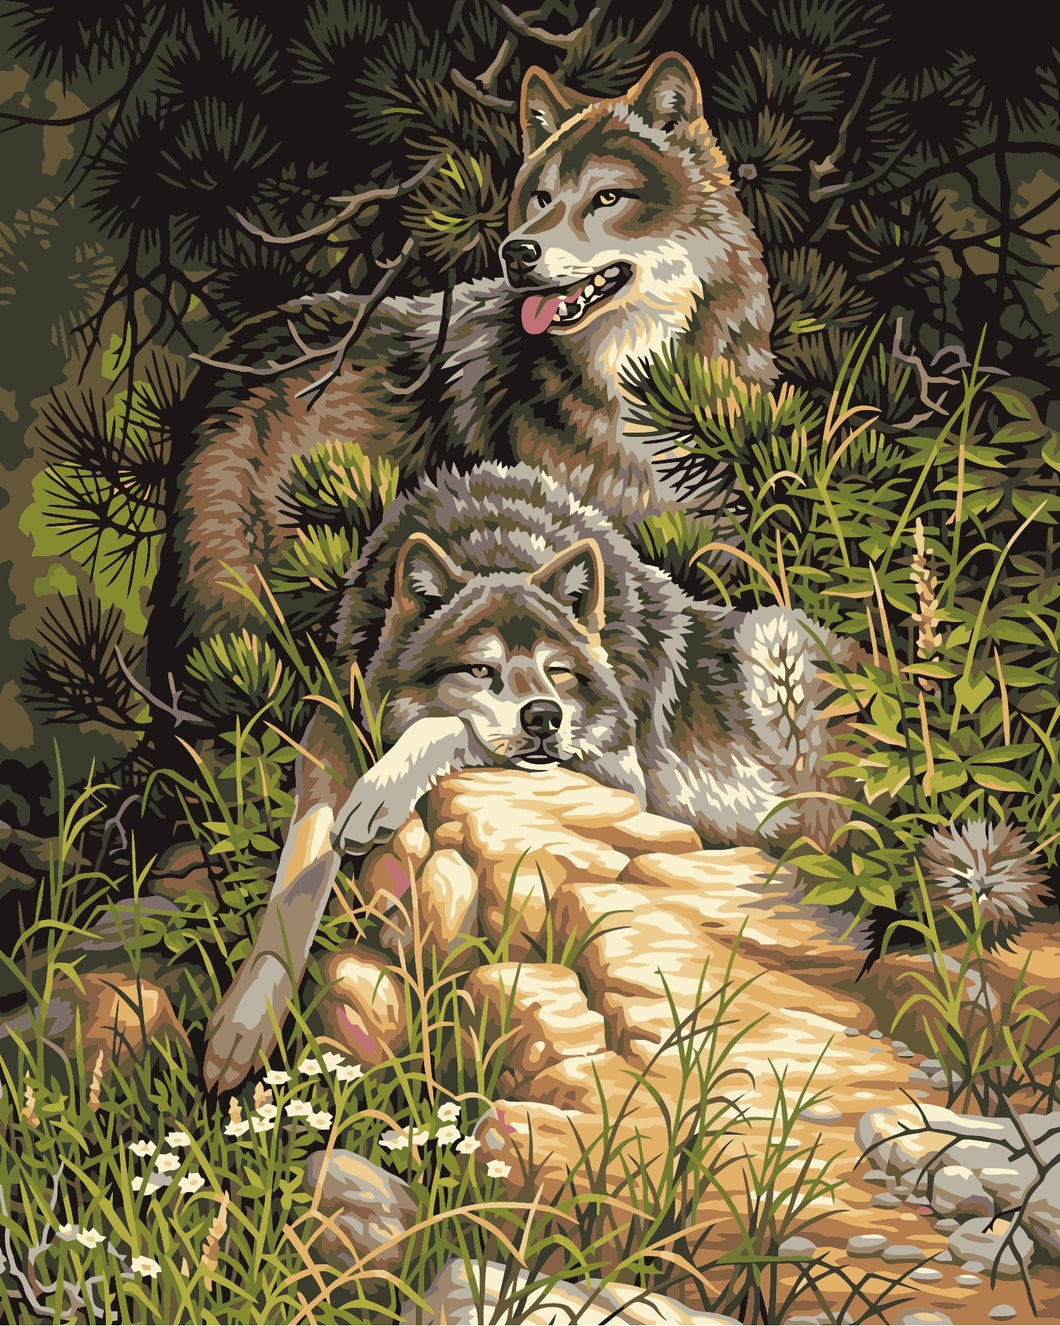 Wolves In Jungle Painting By Numbers Kit